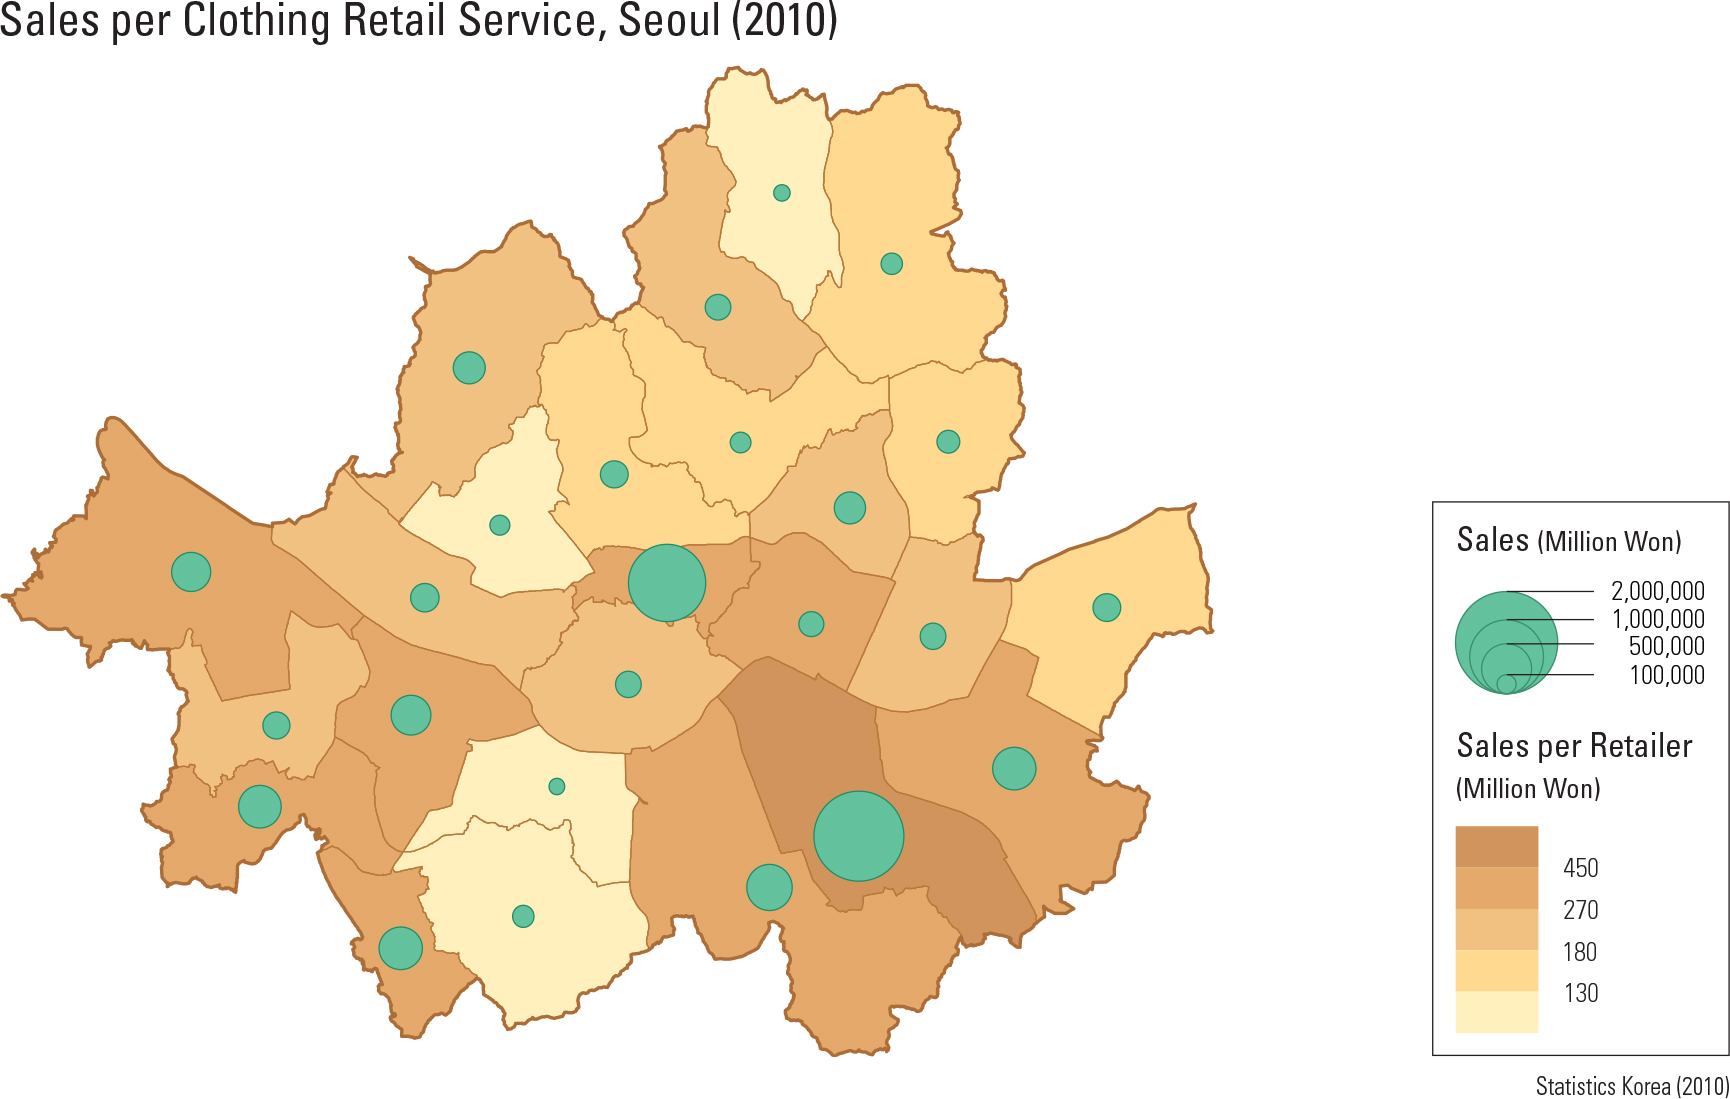 Sales per Clothing Retail Service, Seoul (2010)